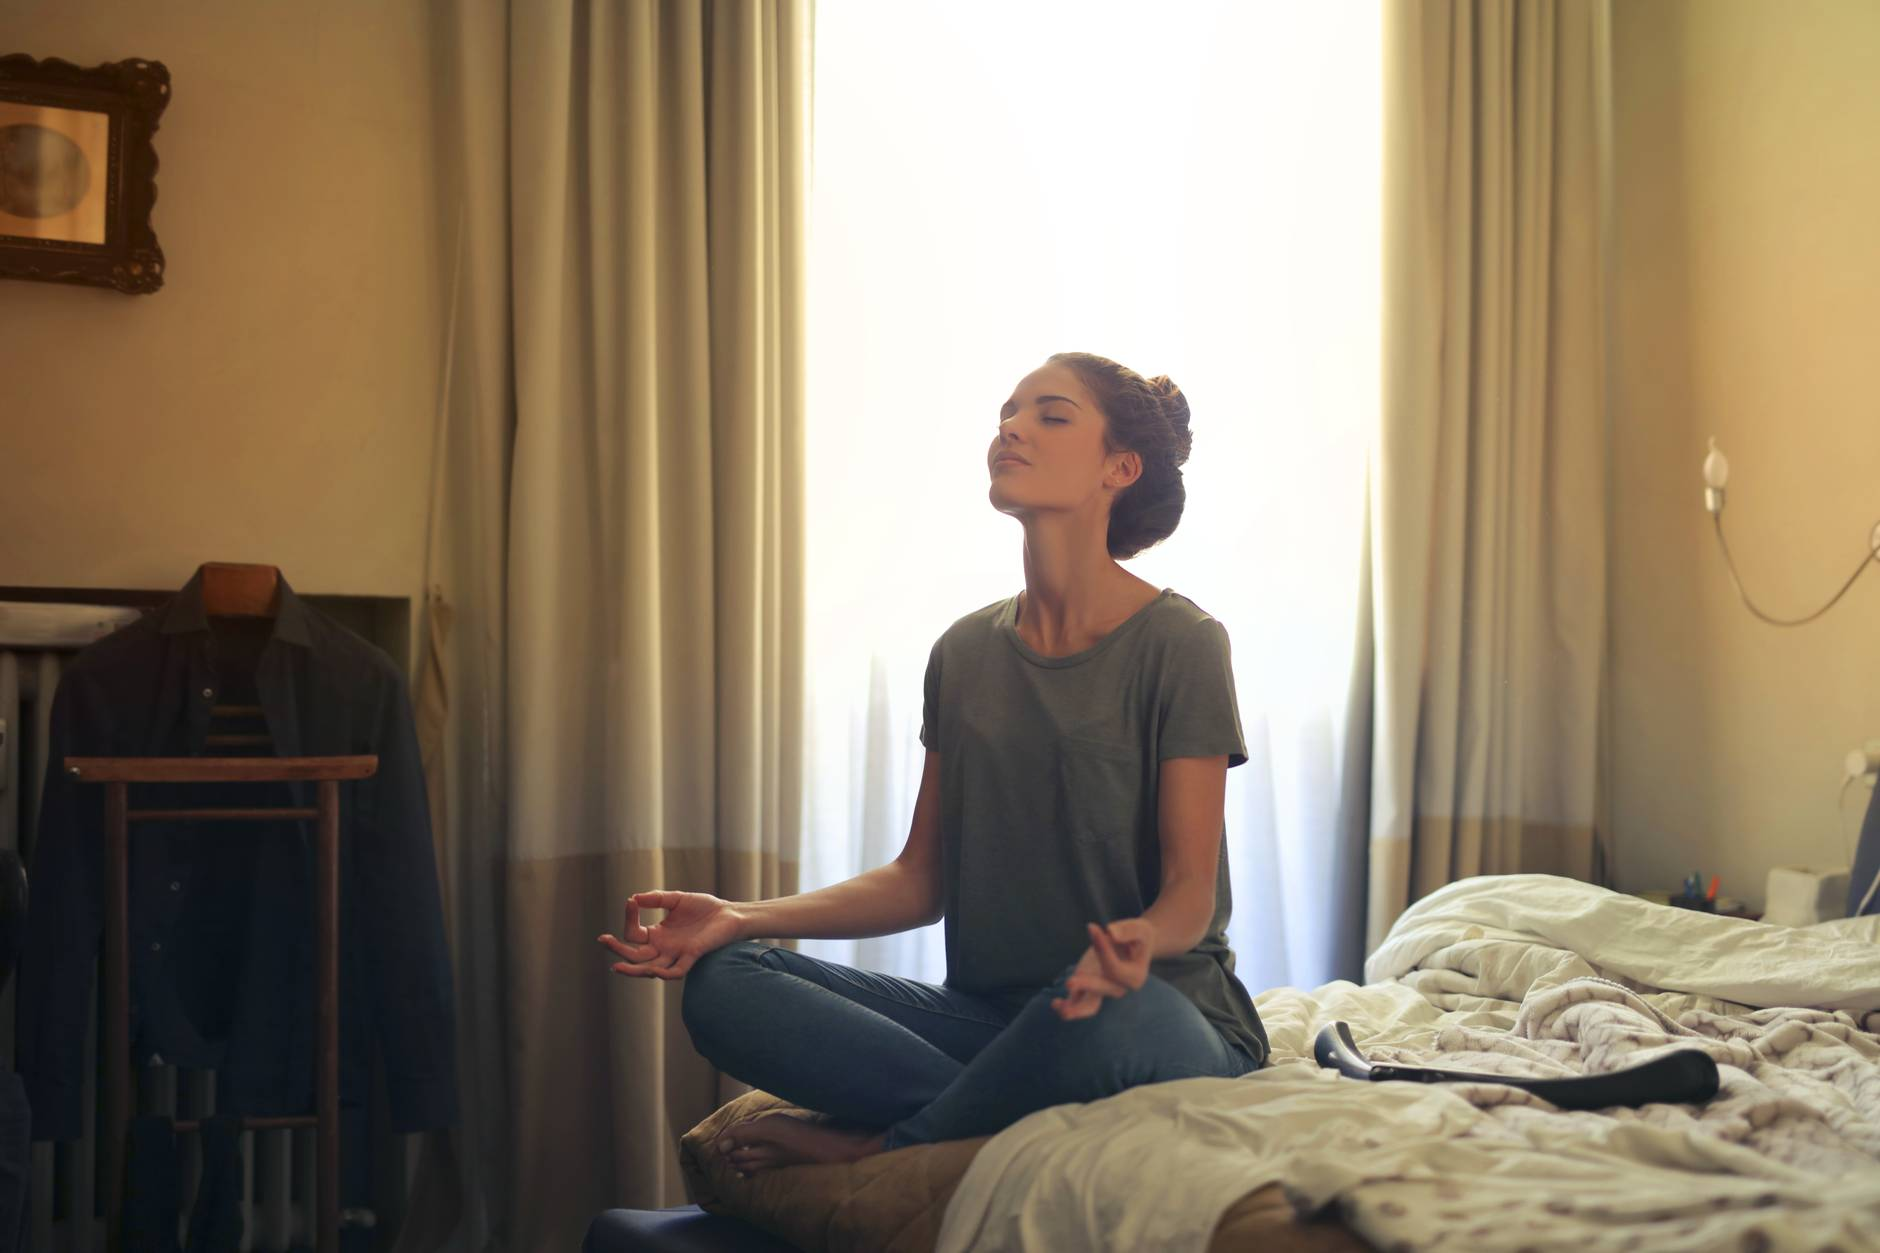 woman meditating in bedroom